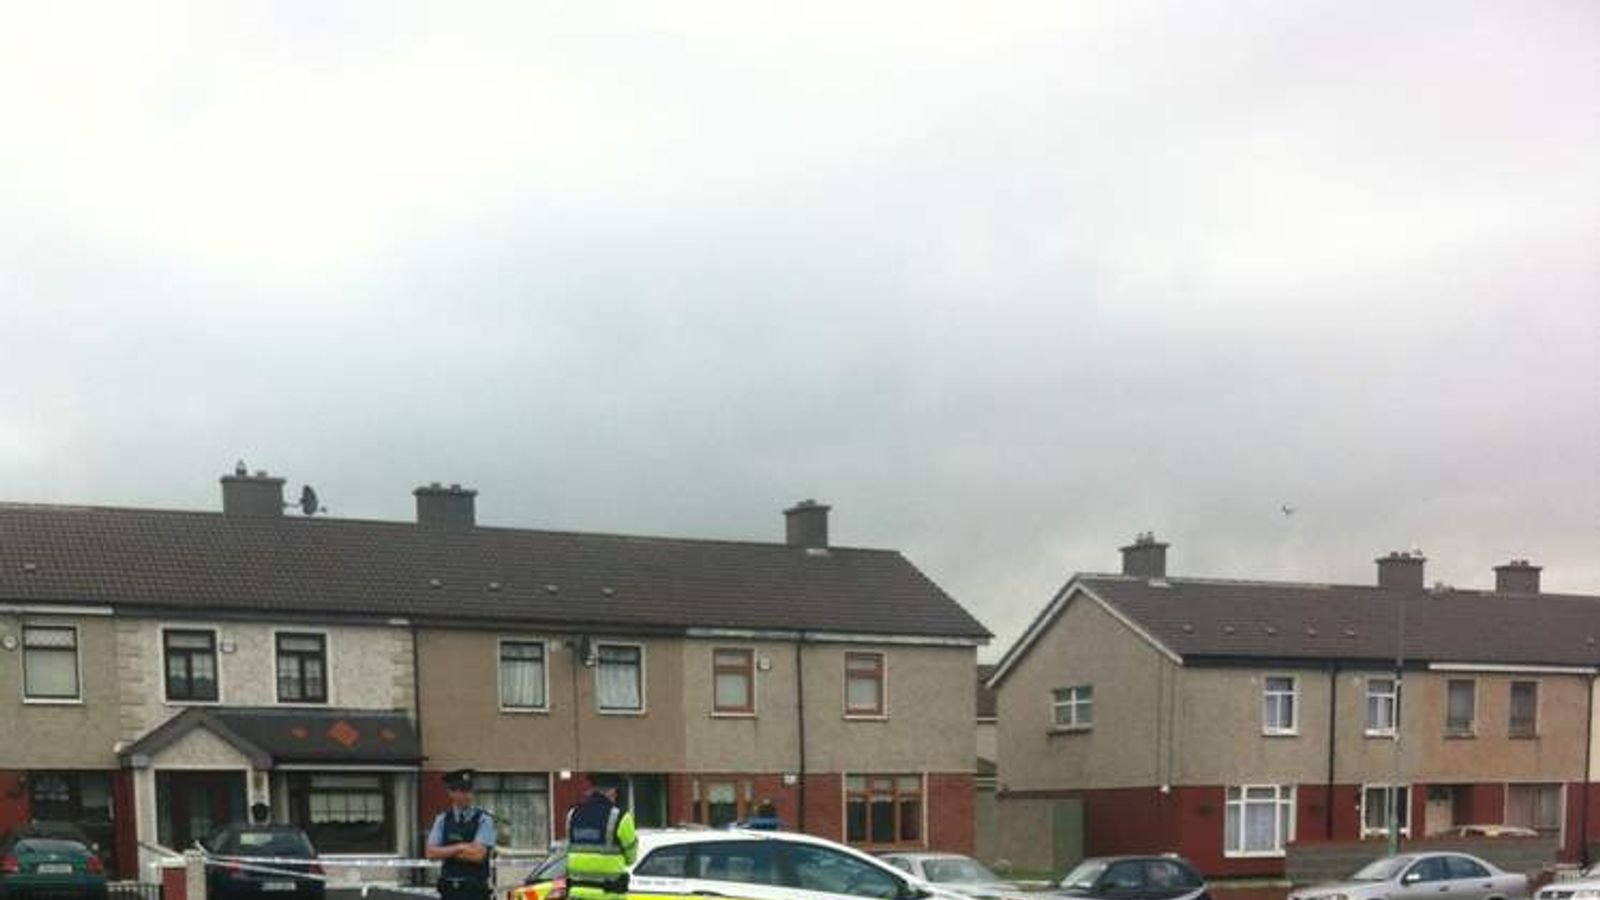 The scene of a shooting in the Ballyfermot area of Dublin.